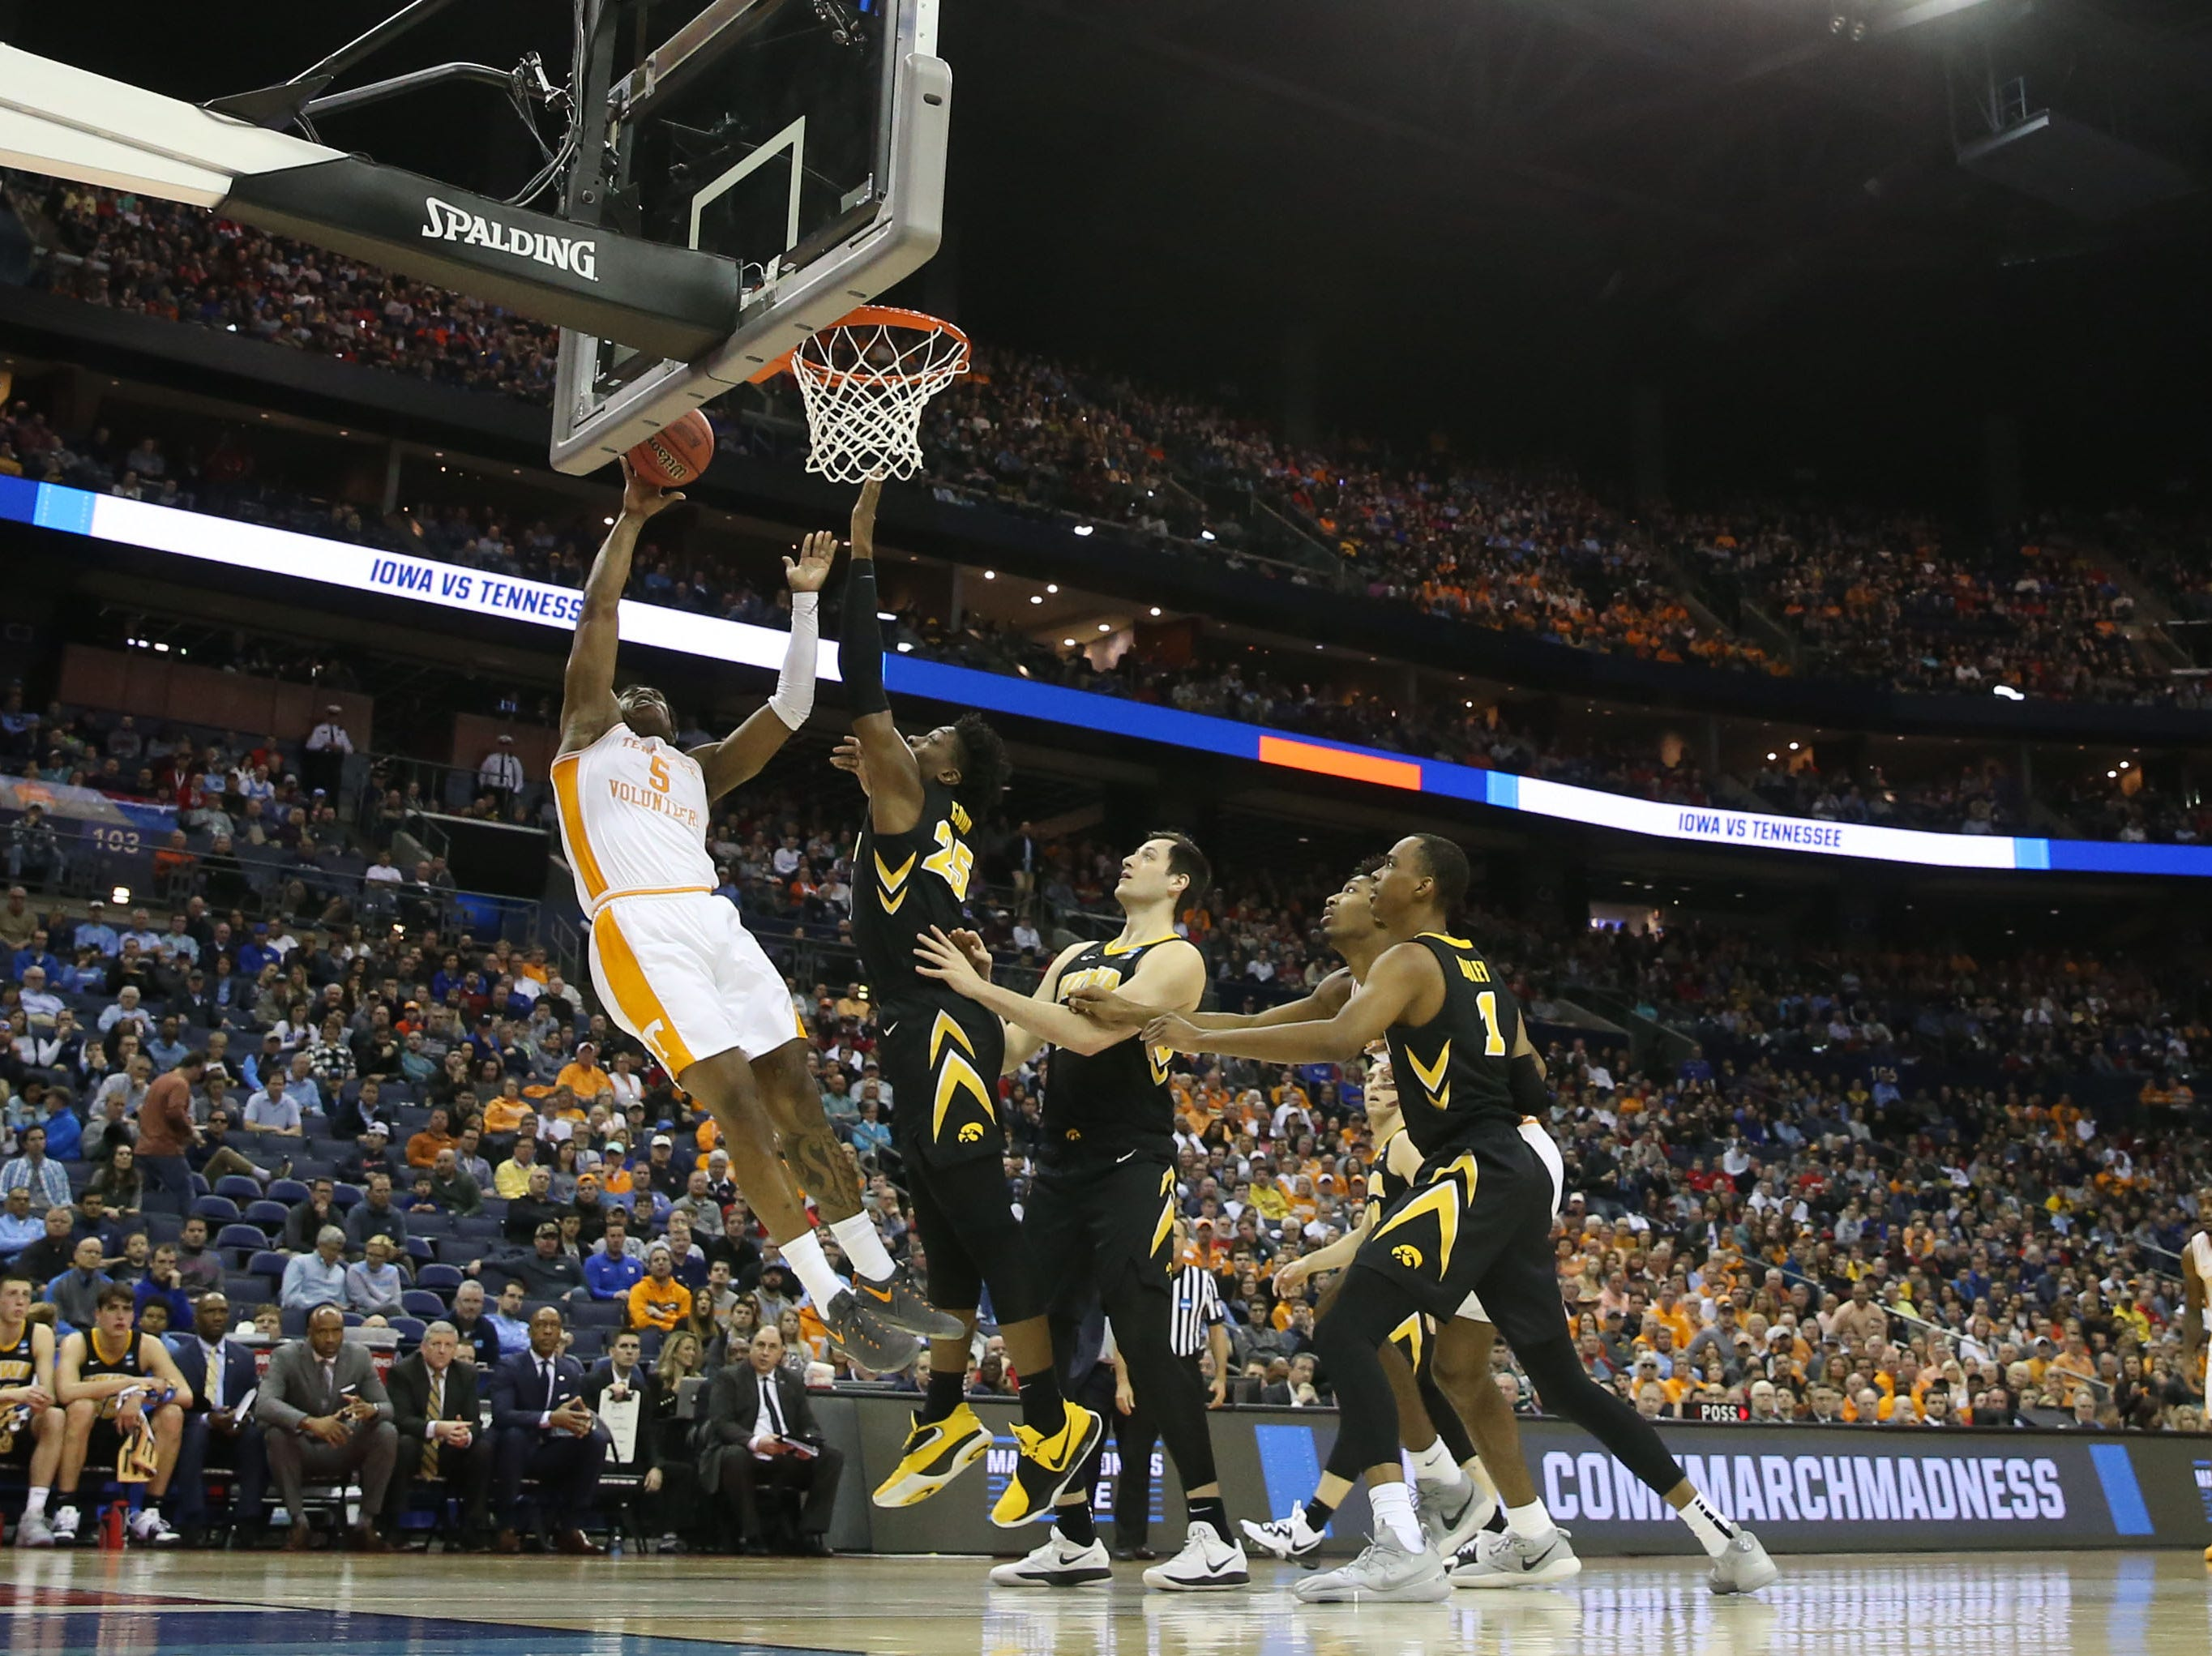 Tennessee Volunteers guard Admiral Schofield (5) goes to the basket in the first half against the Iowa Hawkeyes in the second round of the 2019 NCAA Tournament at Nationwide Arena.